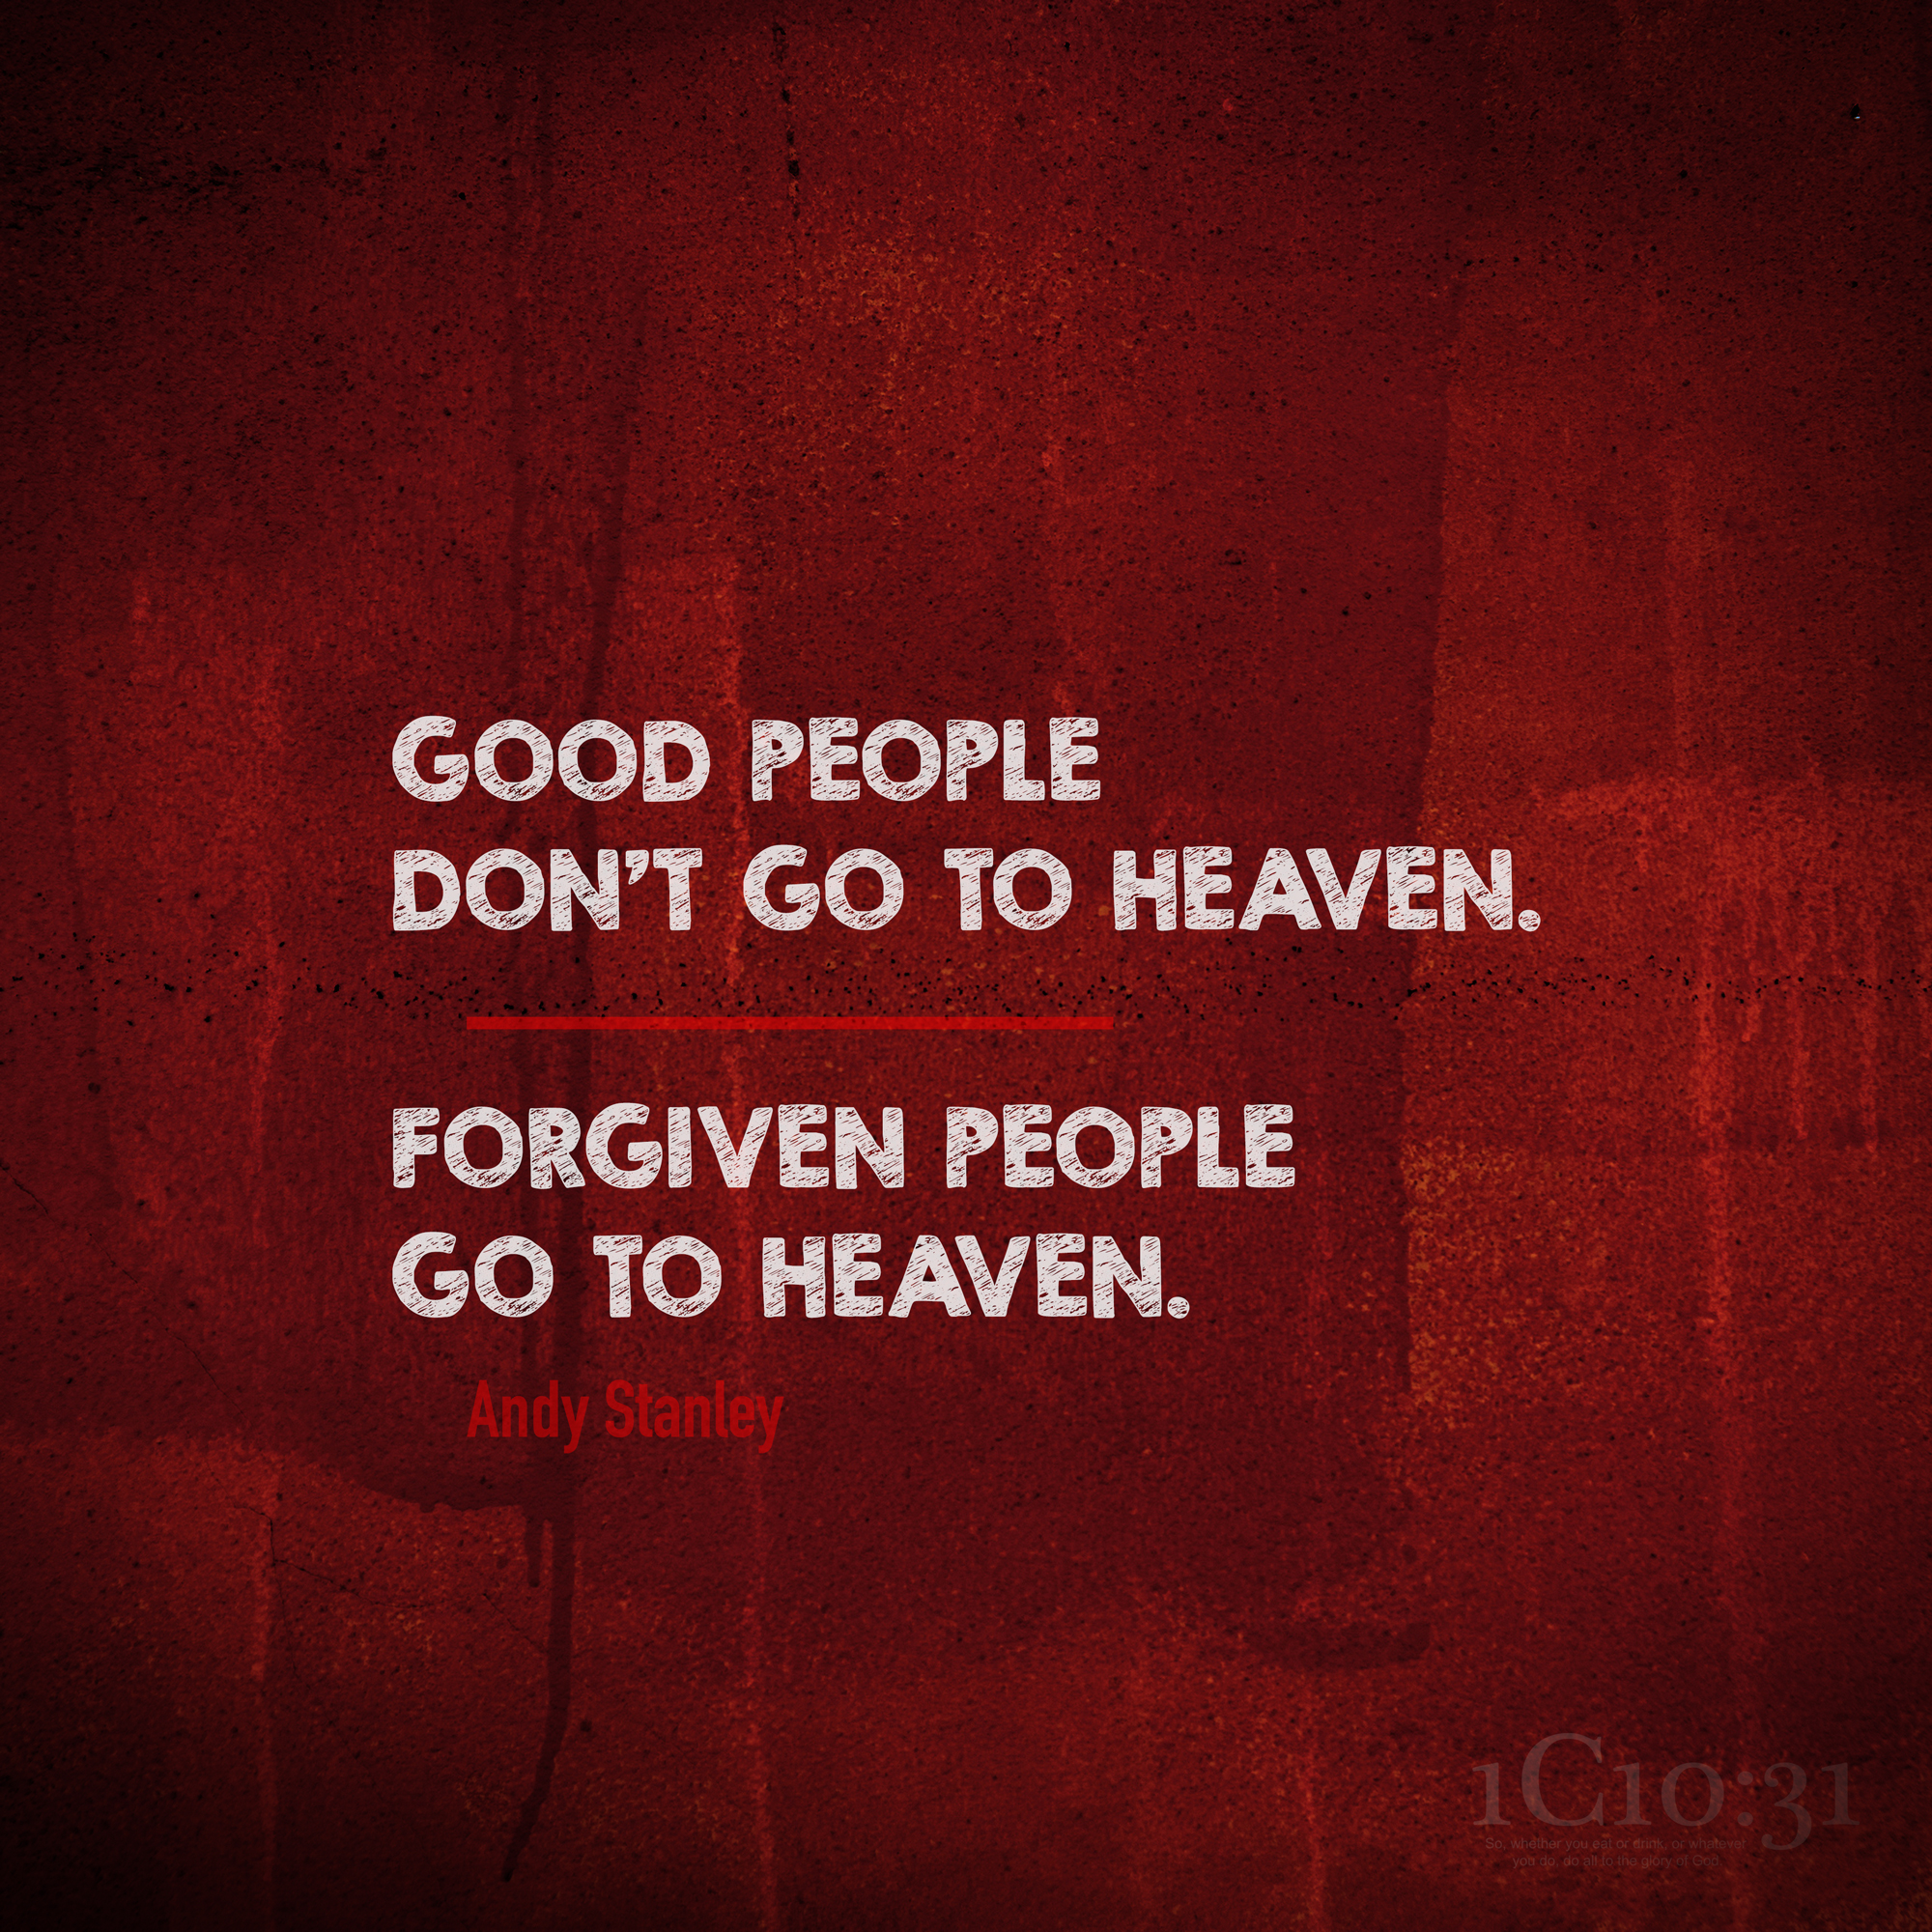 Good People Don't Go To Heaven. Forgiven people Go To Heaven.